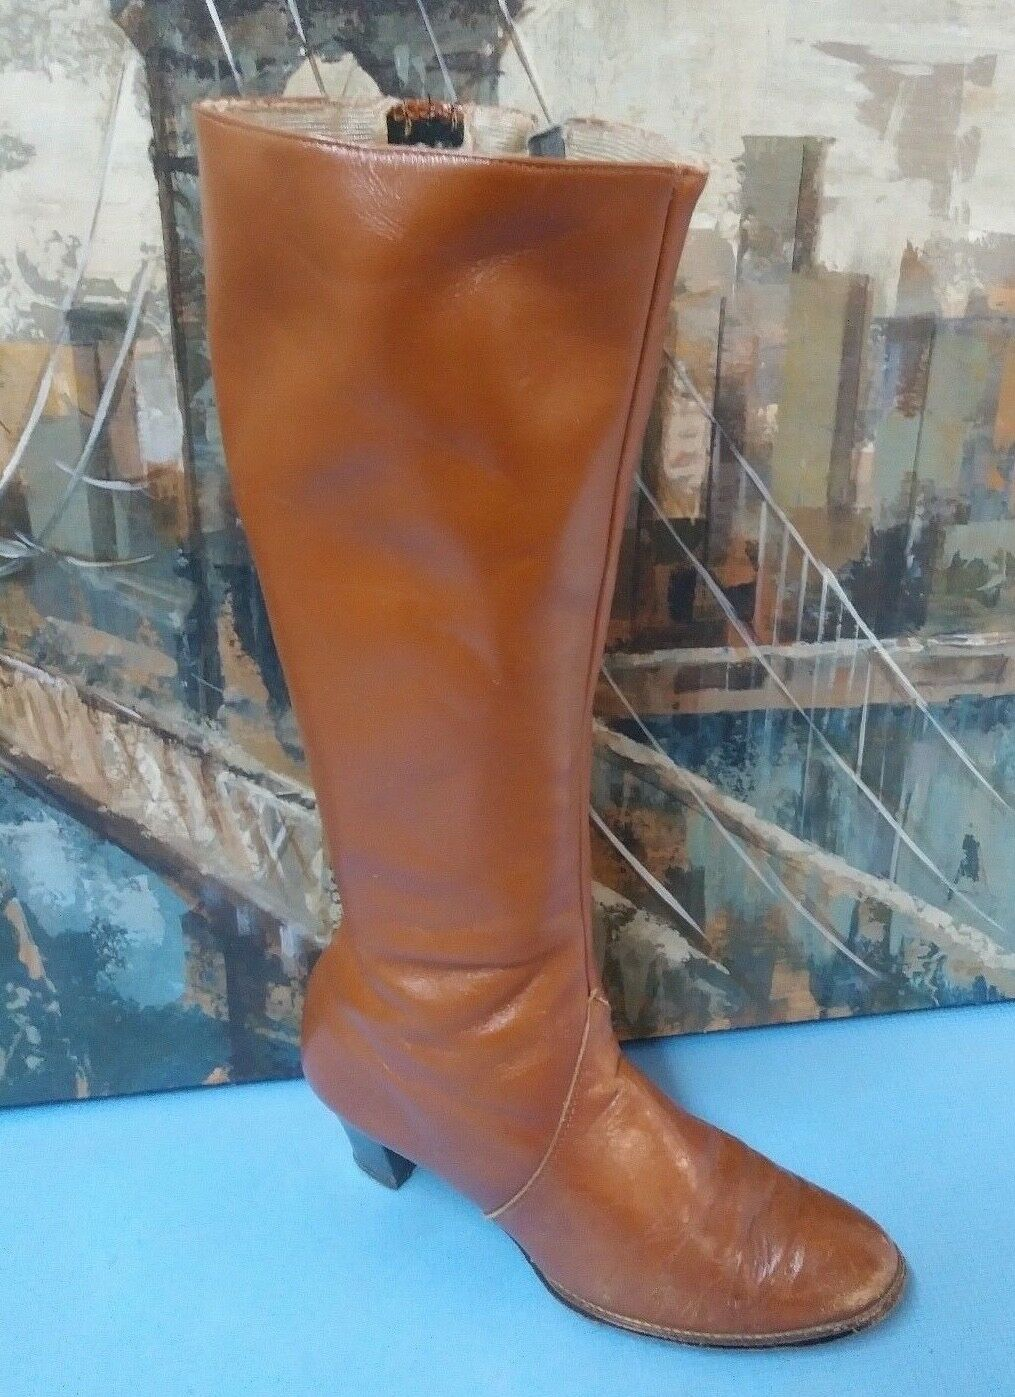 Vintage Womens Leather Tall Fashion Boots Size 8.5 B